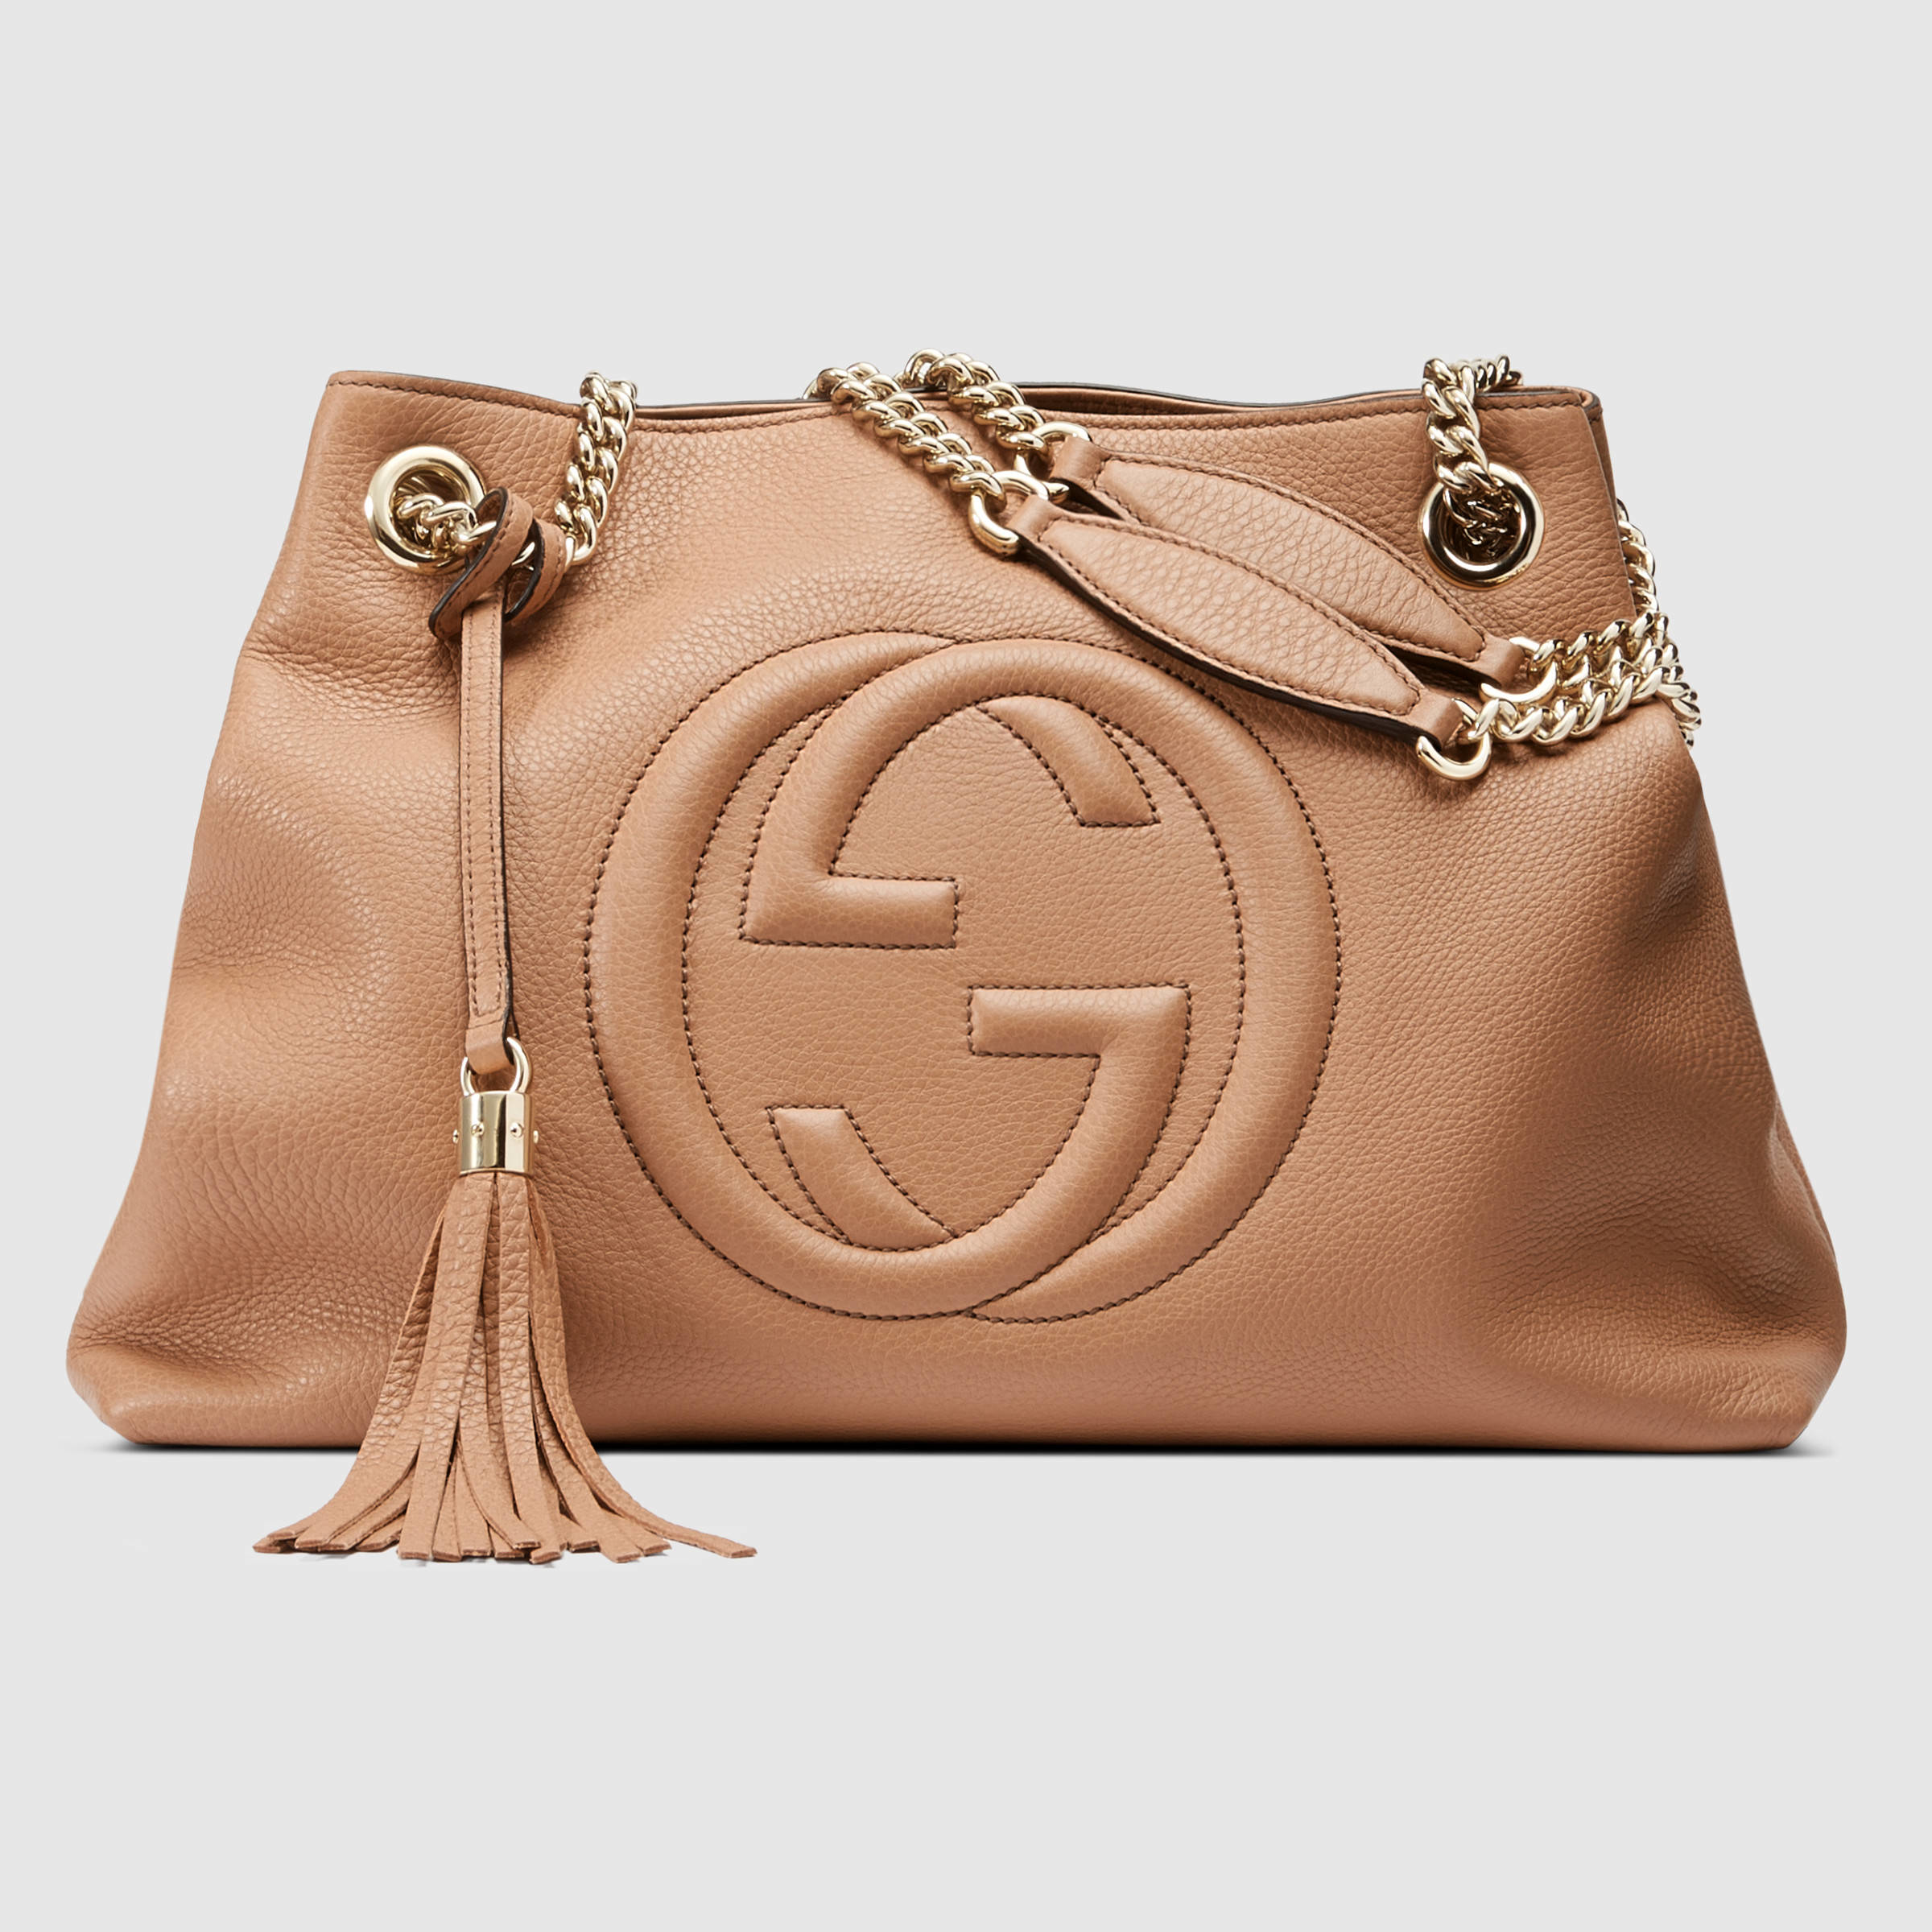 62ded4ea860 Gucci Soho Leather Shoulder Bag in Natural - Lyst